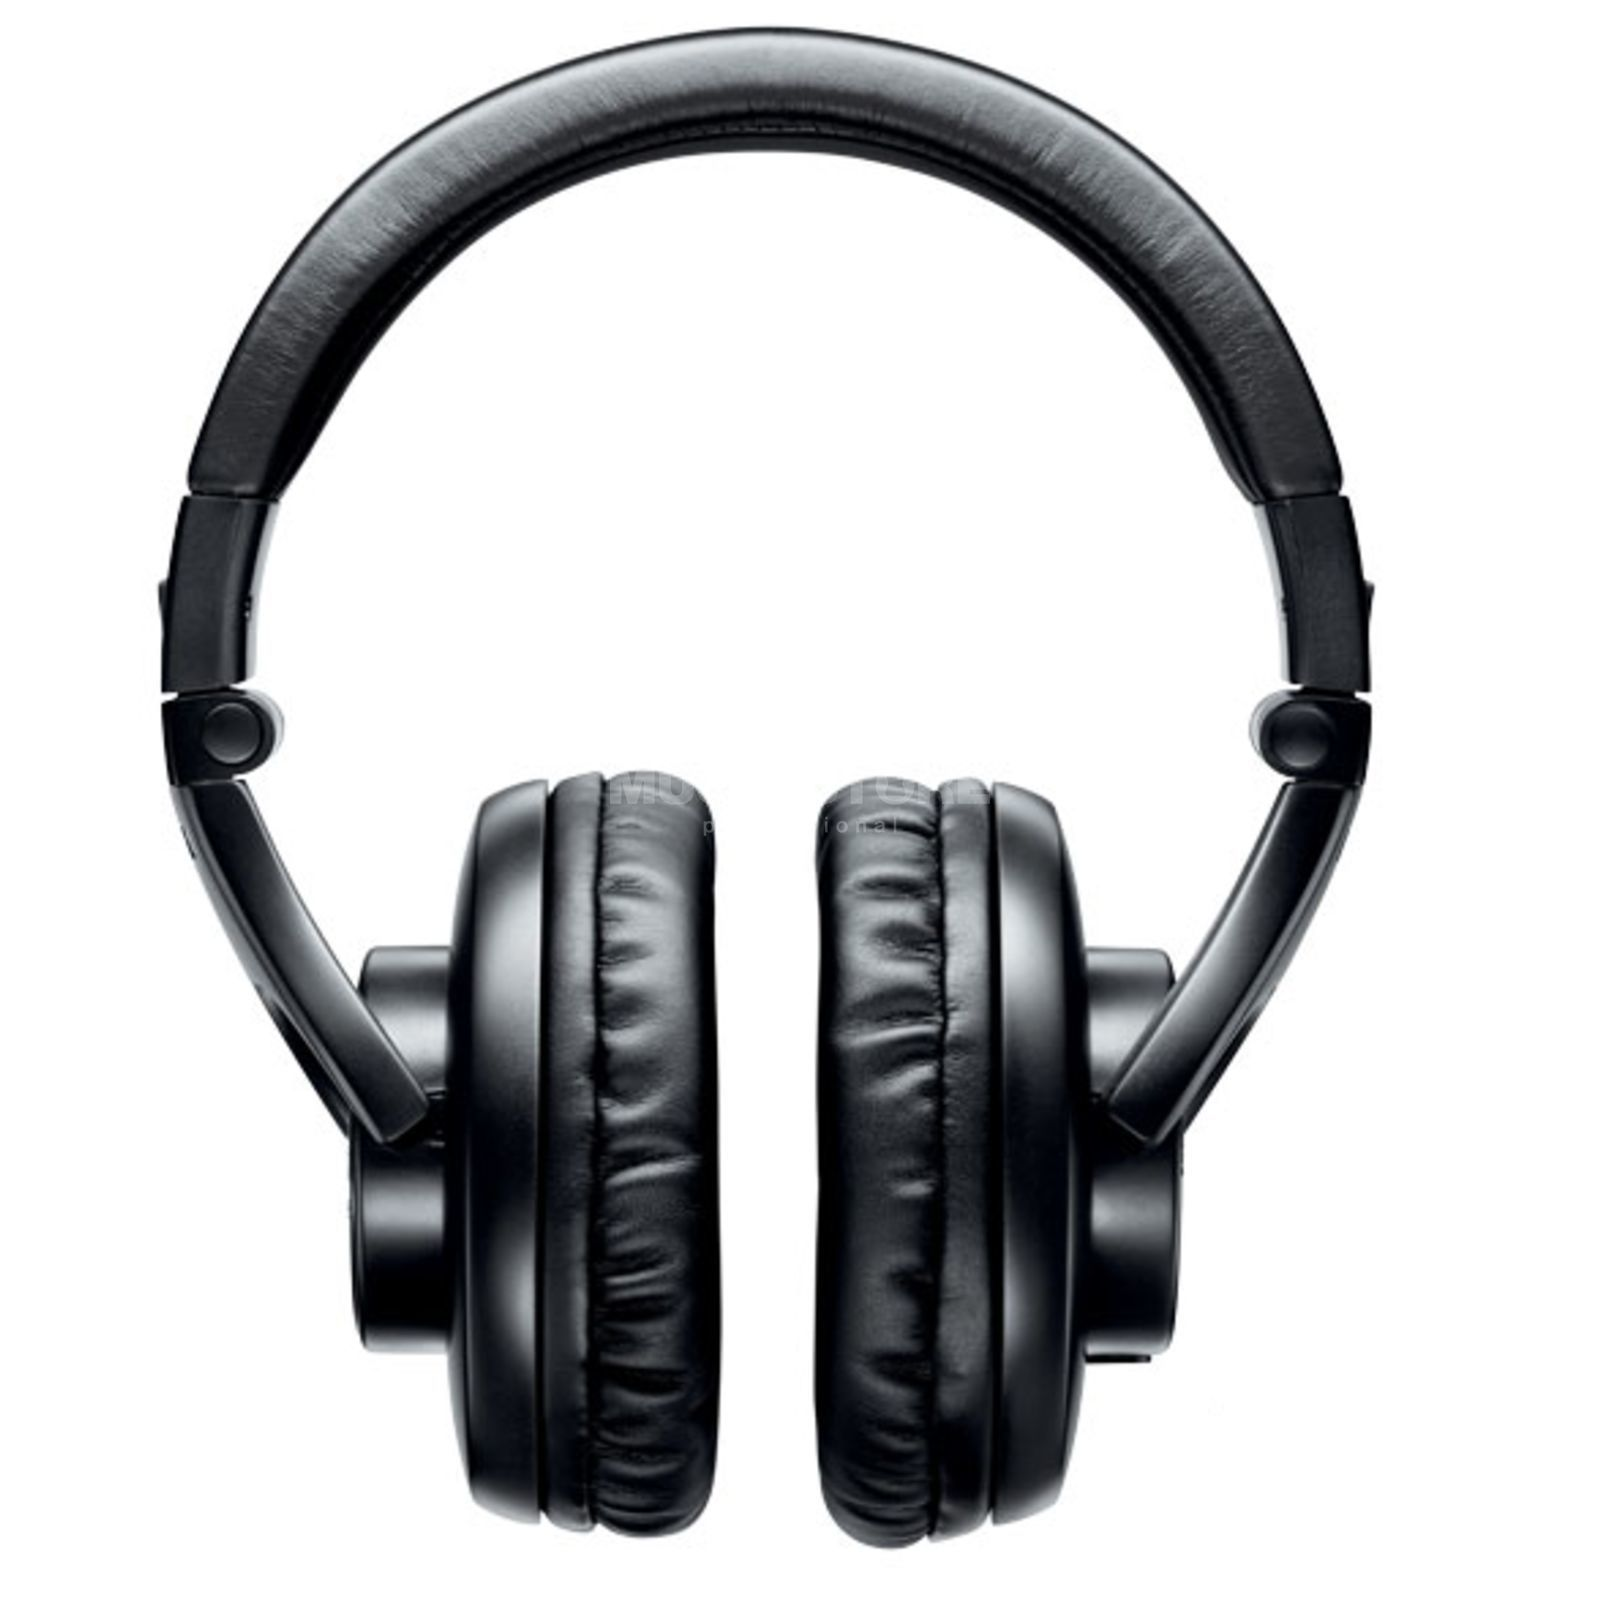 Shure SRH440 Professional Studio Headphones Product Image